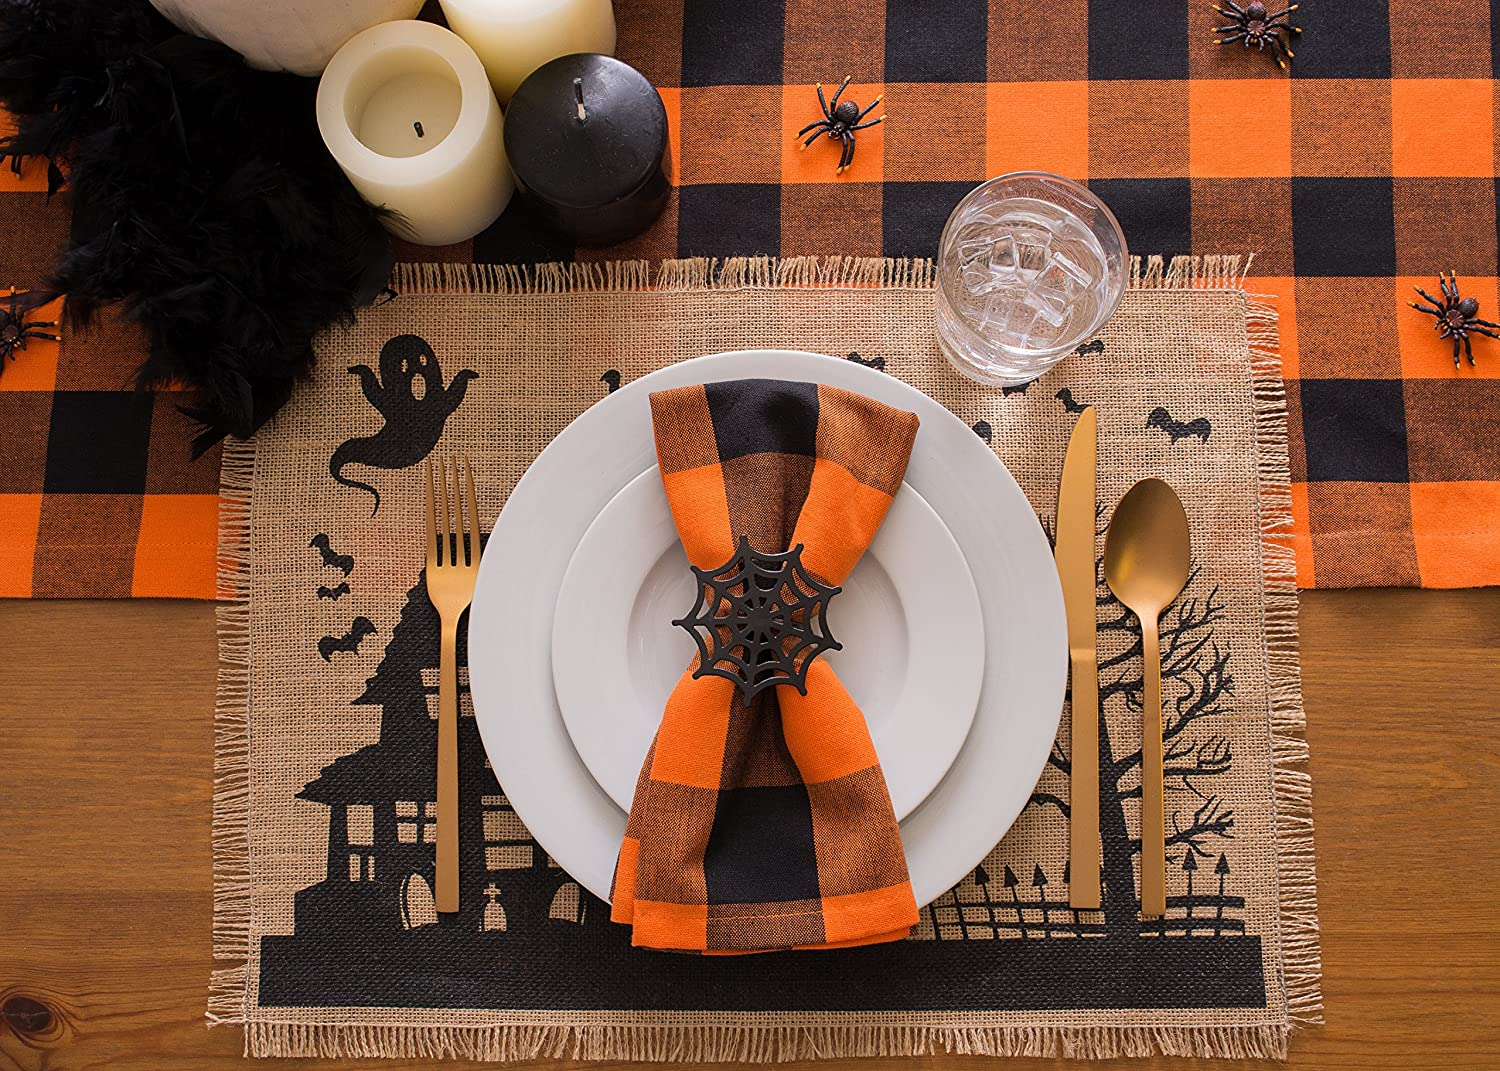 DII 100/% Burlap Rustic Vintage Printed Placemat for Parties /& Halloween Hunted House Set of 4